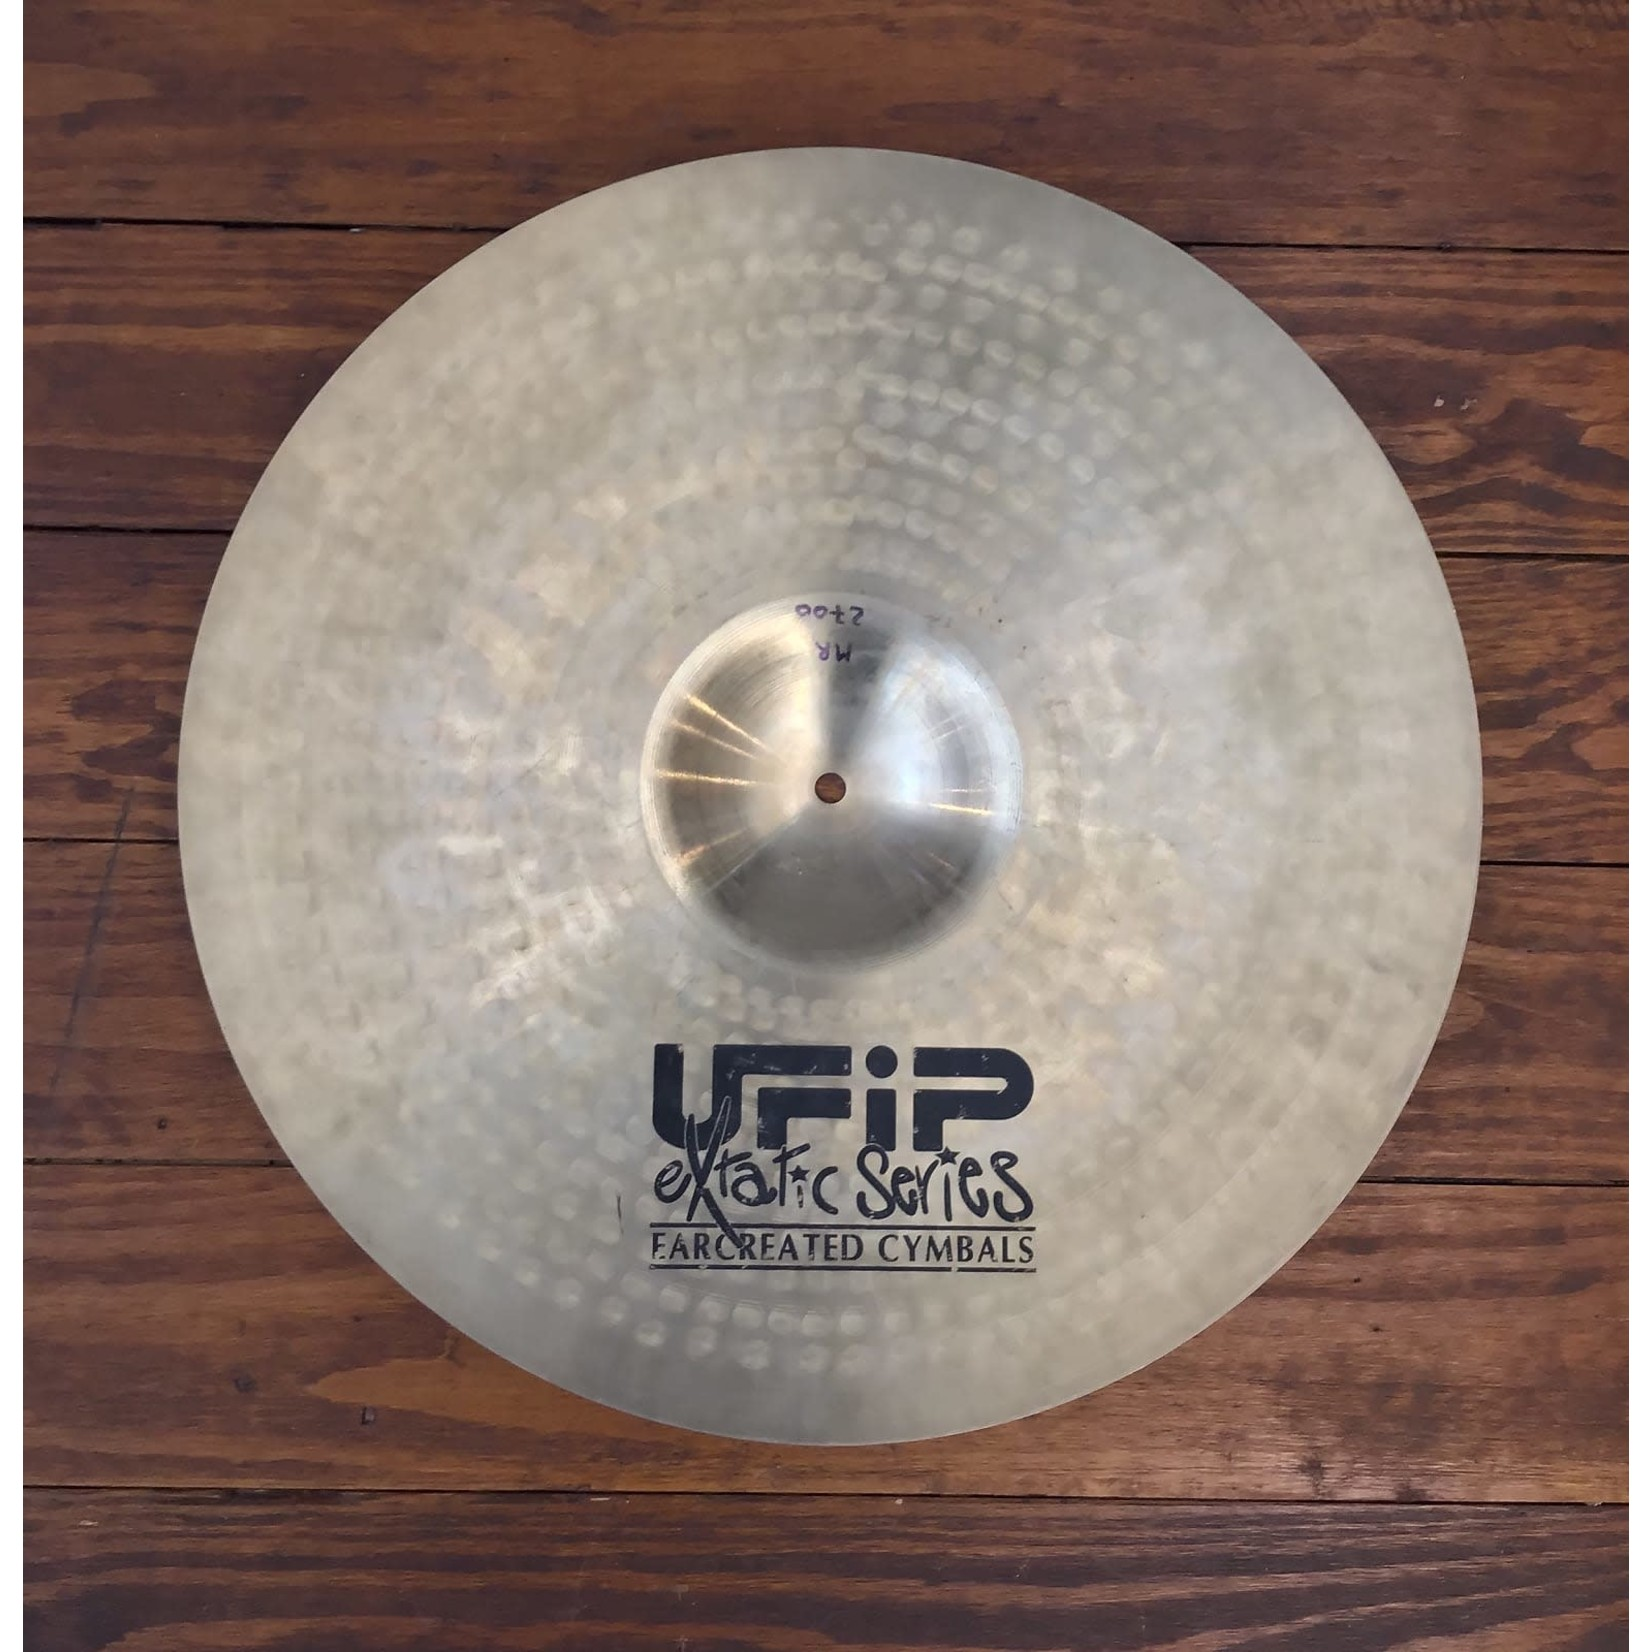 """UFIP USED UFIP Extatic Series 20"""" Ride Cymbal"""